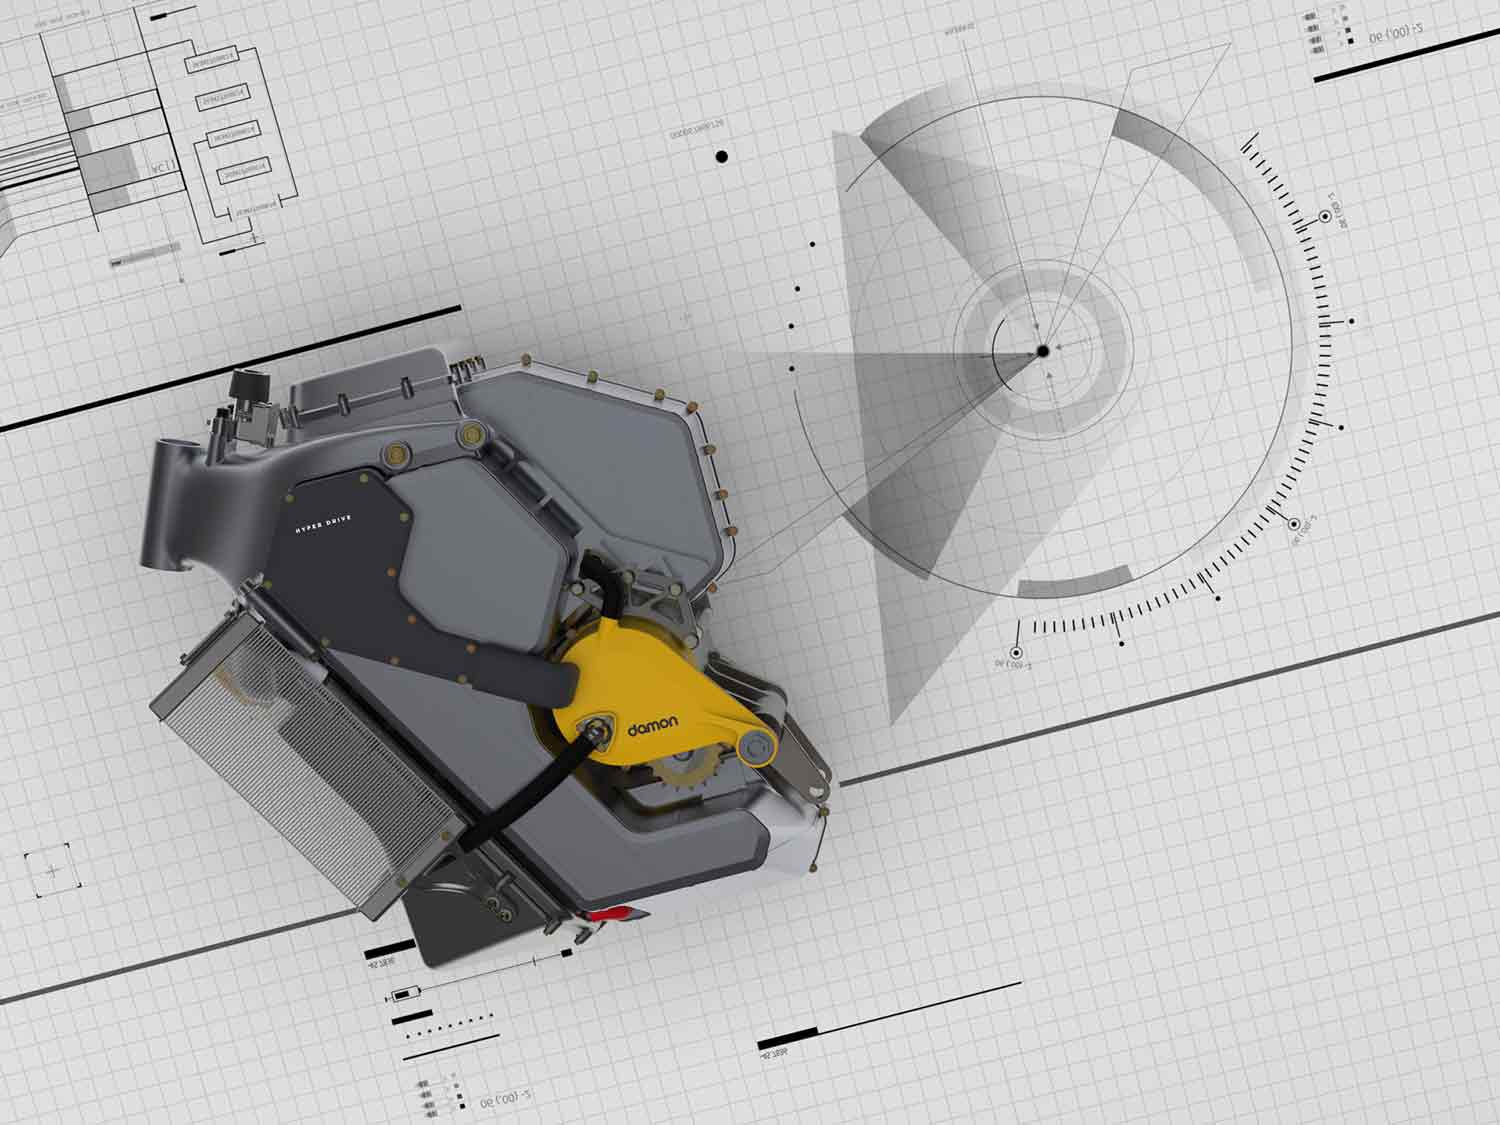 The HyperDrive is a load-bearing battery and motor unit that Damon plans to use in forthcoming motorcycles.